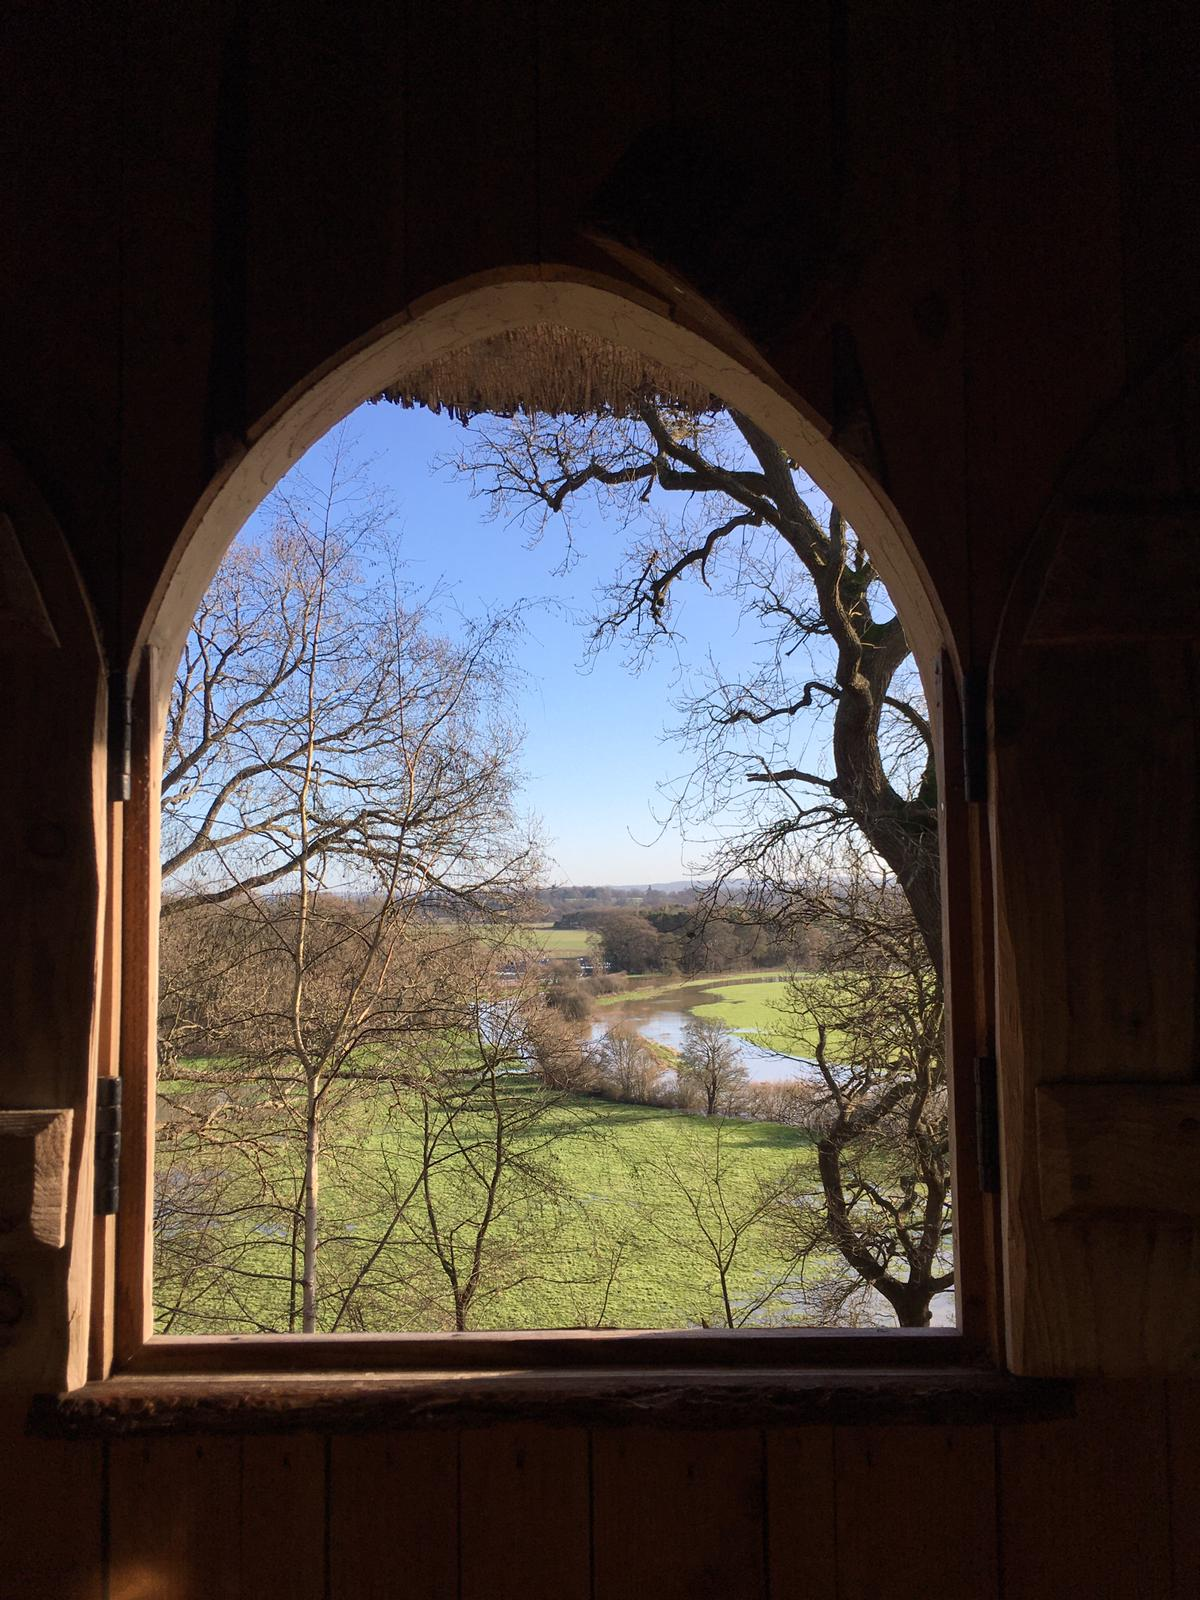 Painshill view from the Hermitage window